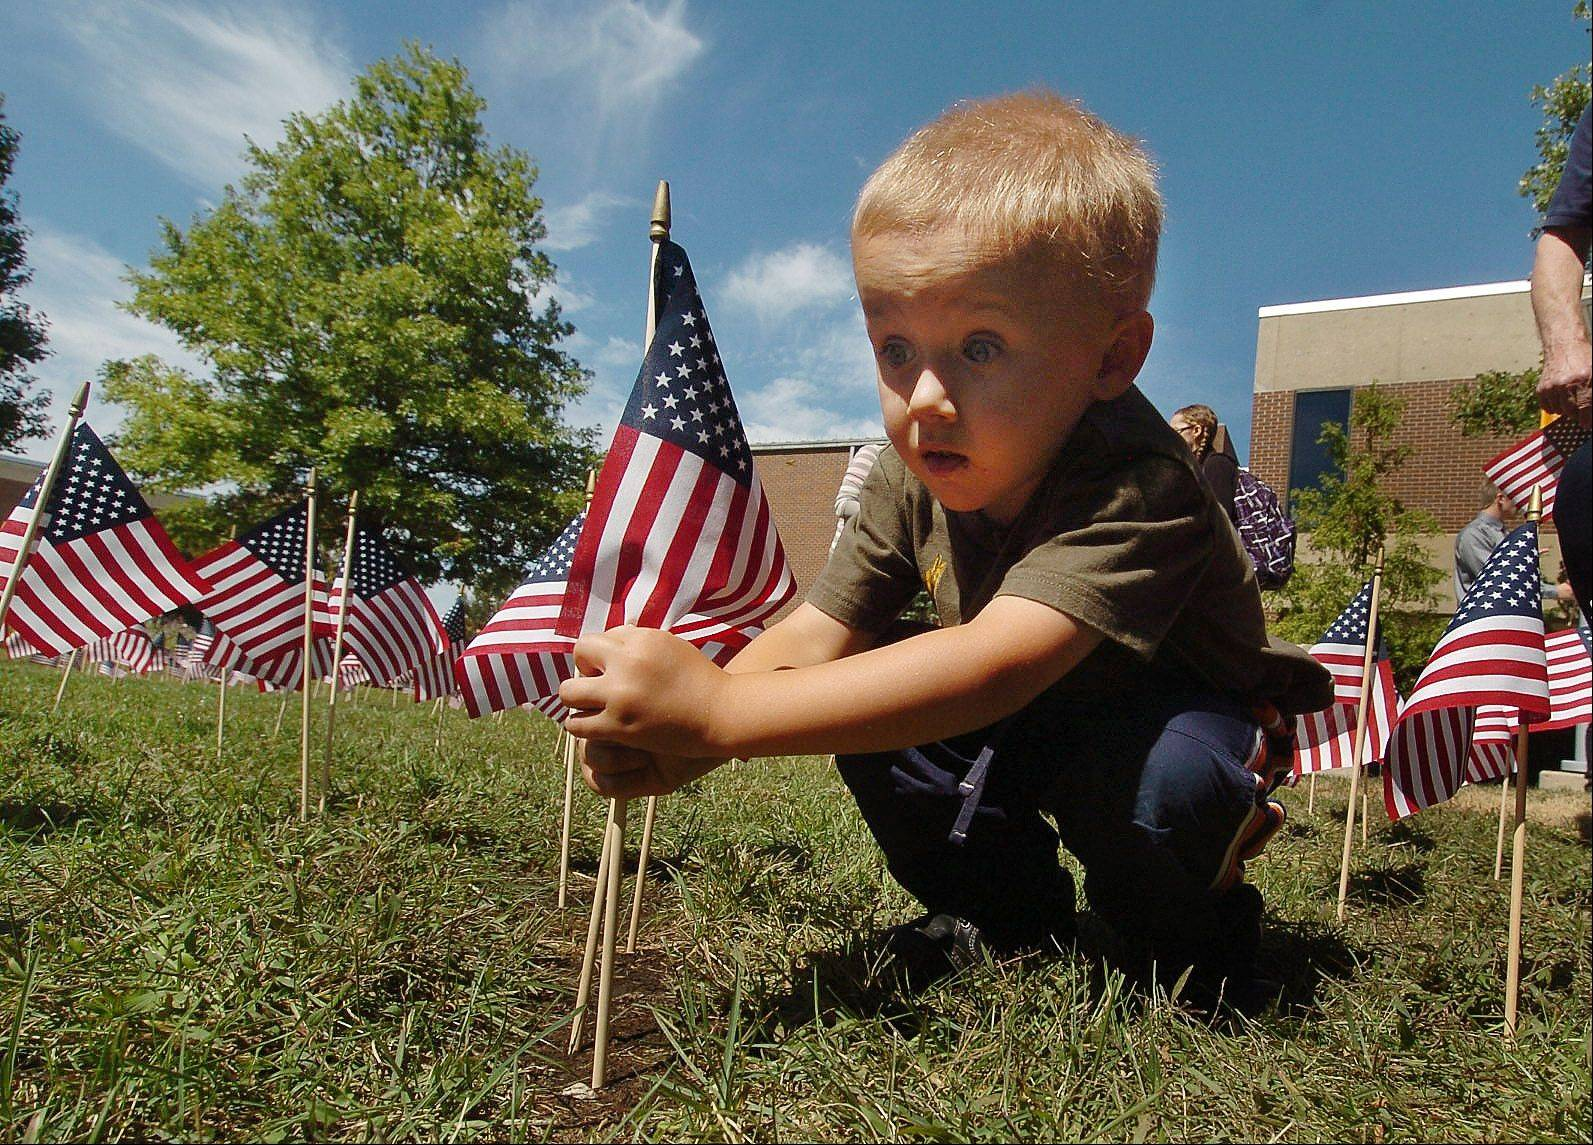 Jack Daly, 4, plants a flag at the Harper College observance on Thursday.